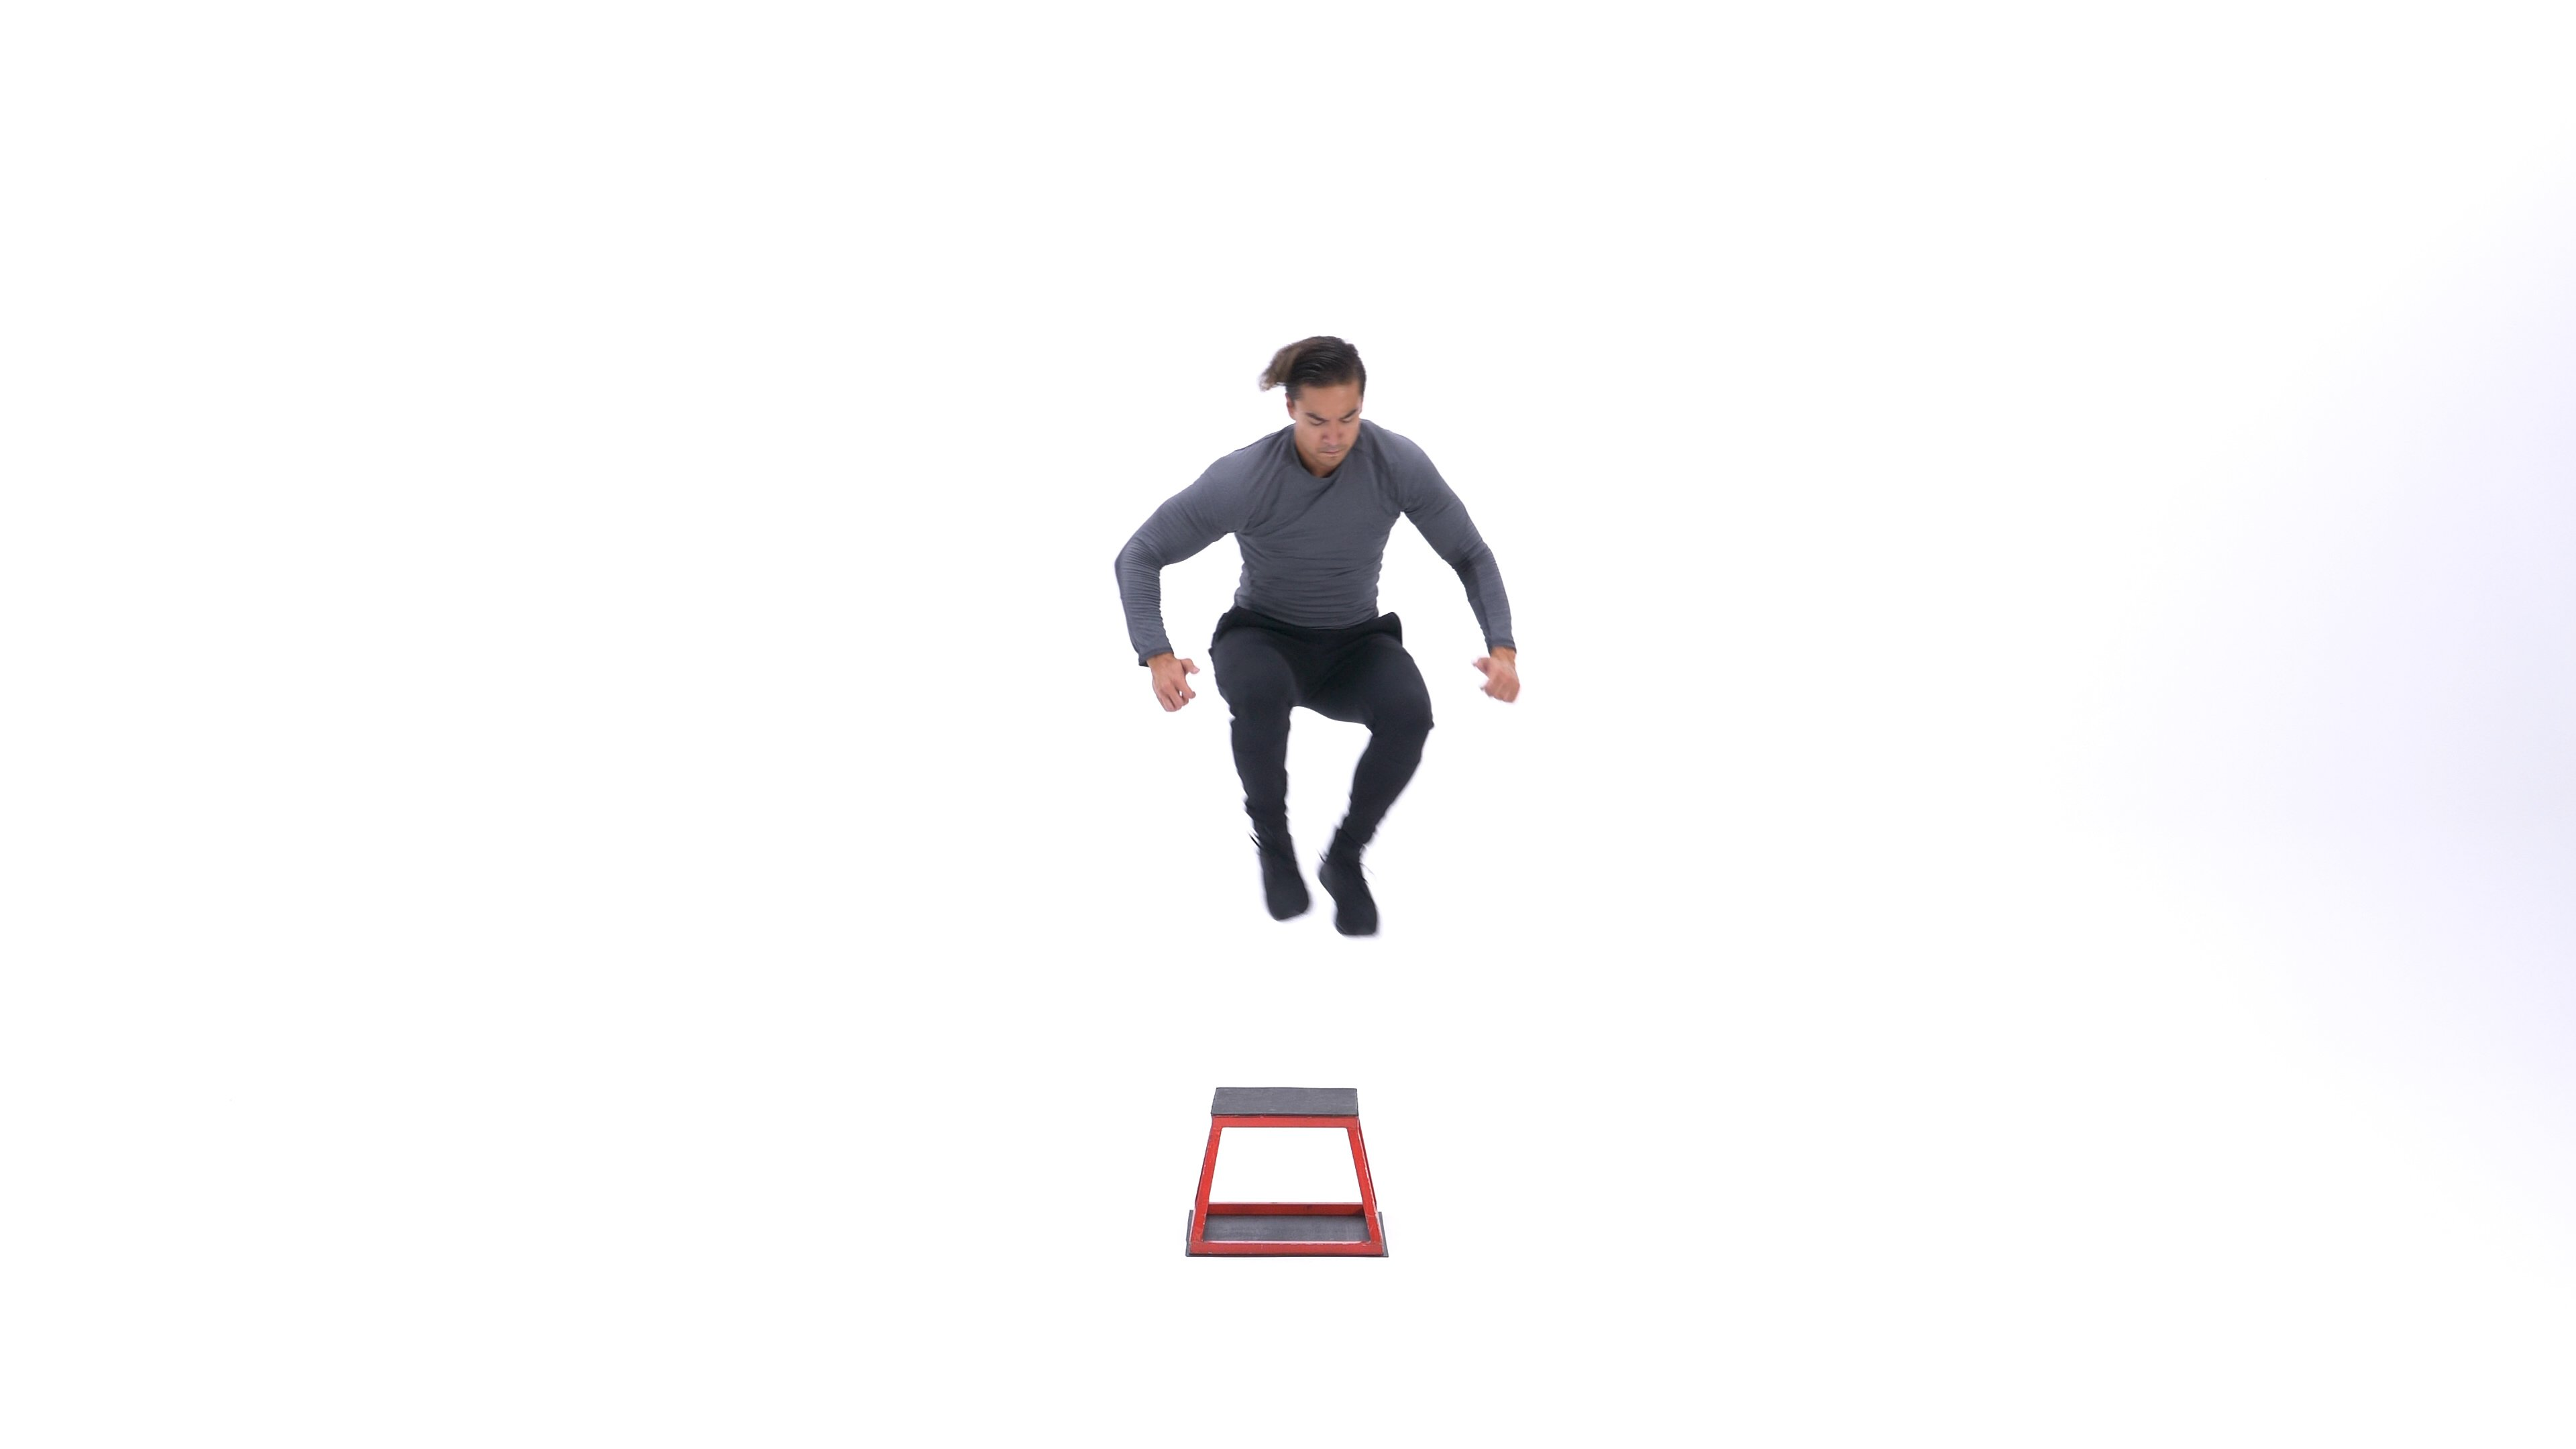 Lateral box jump image